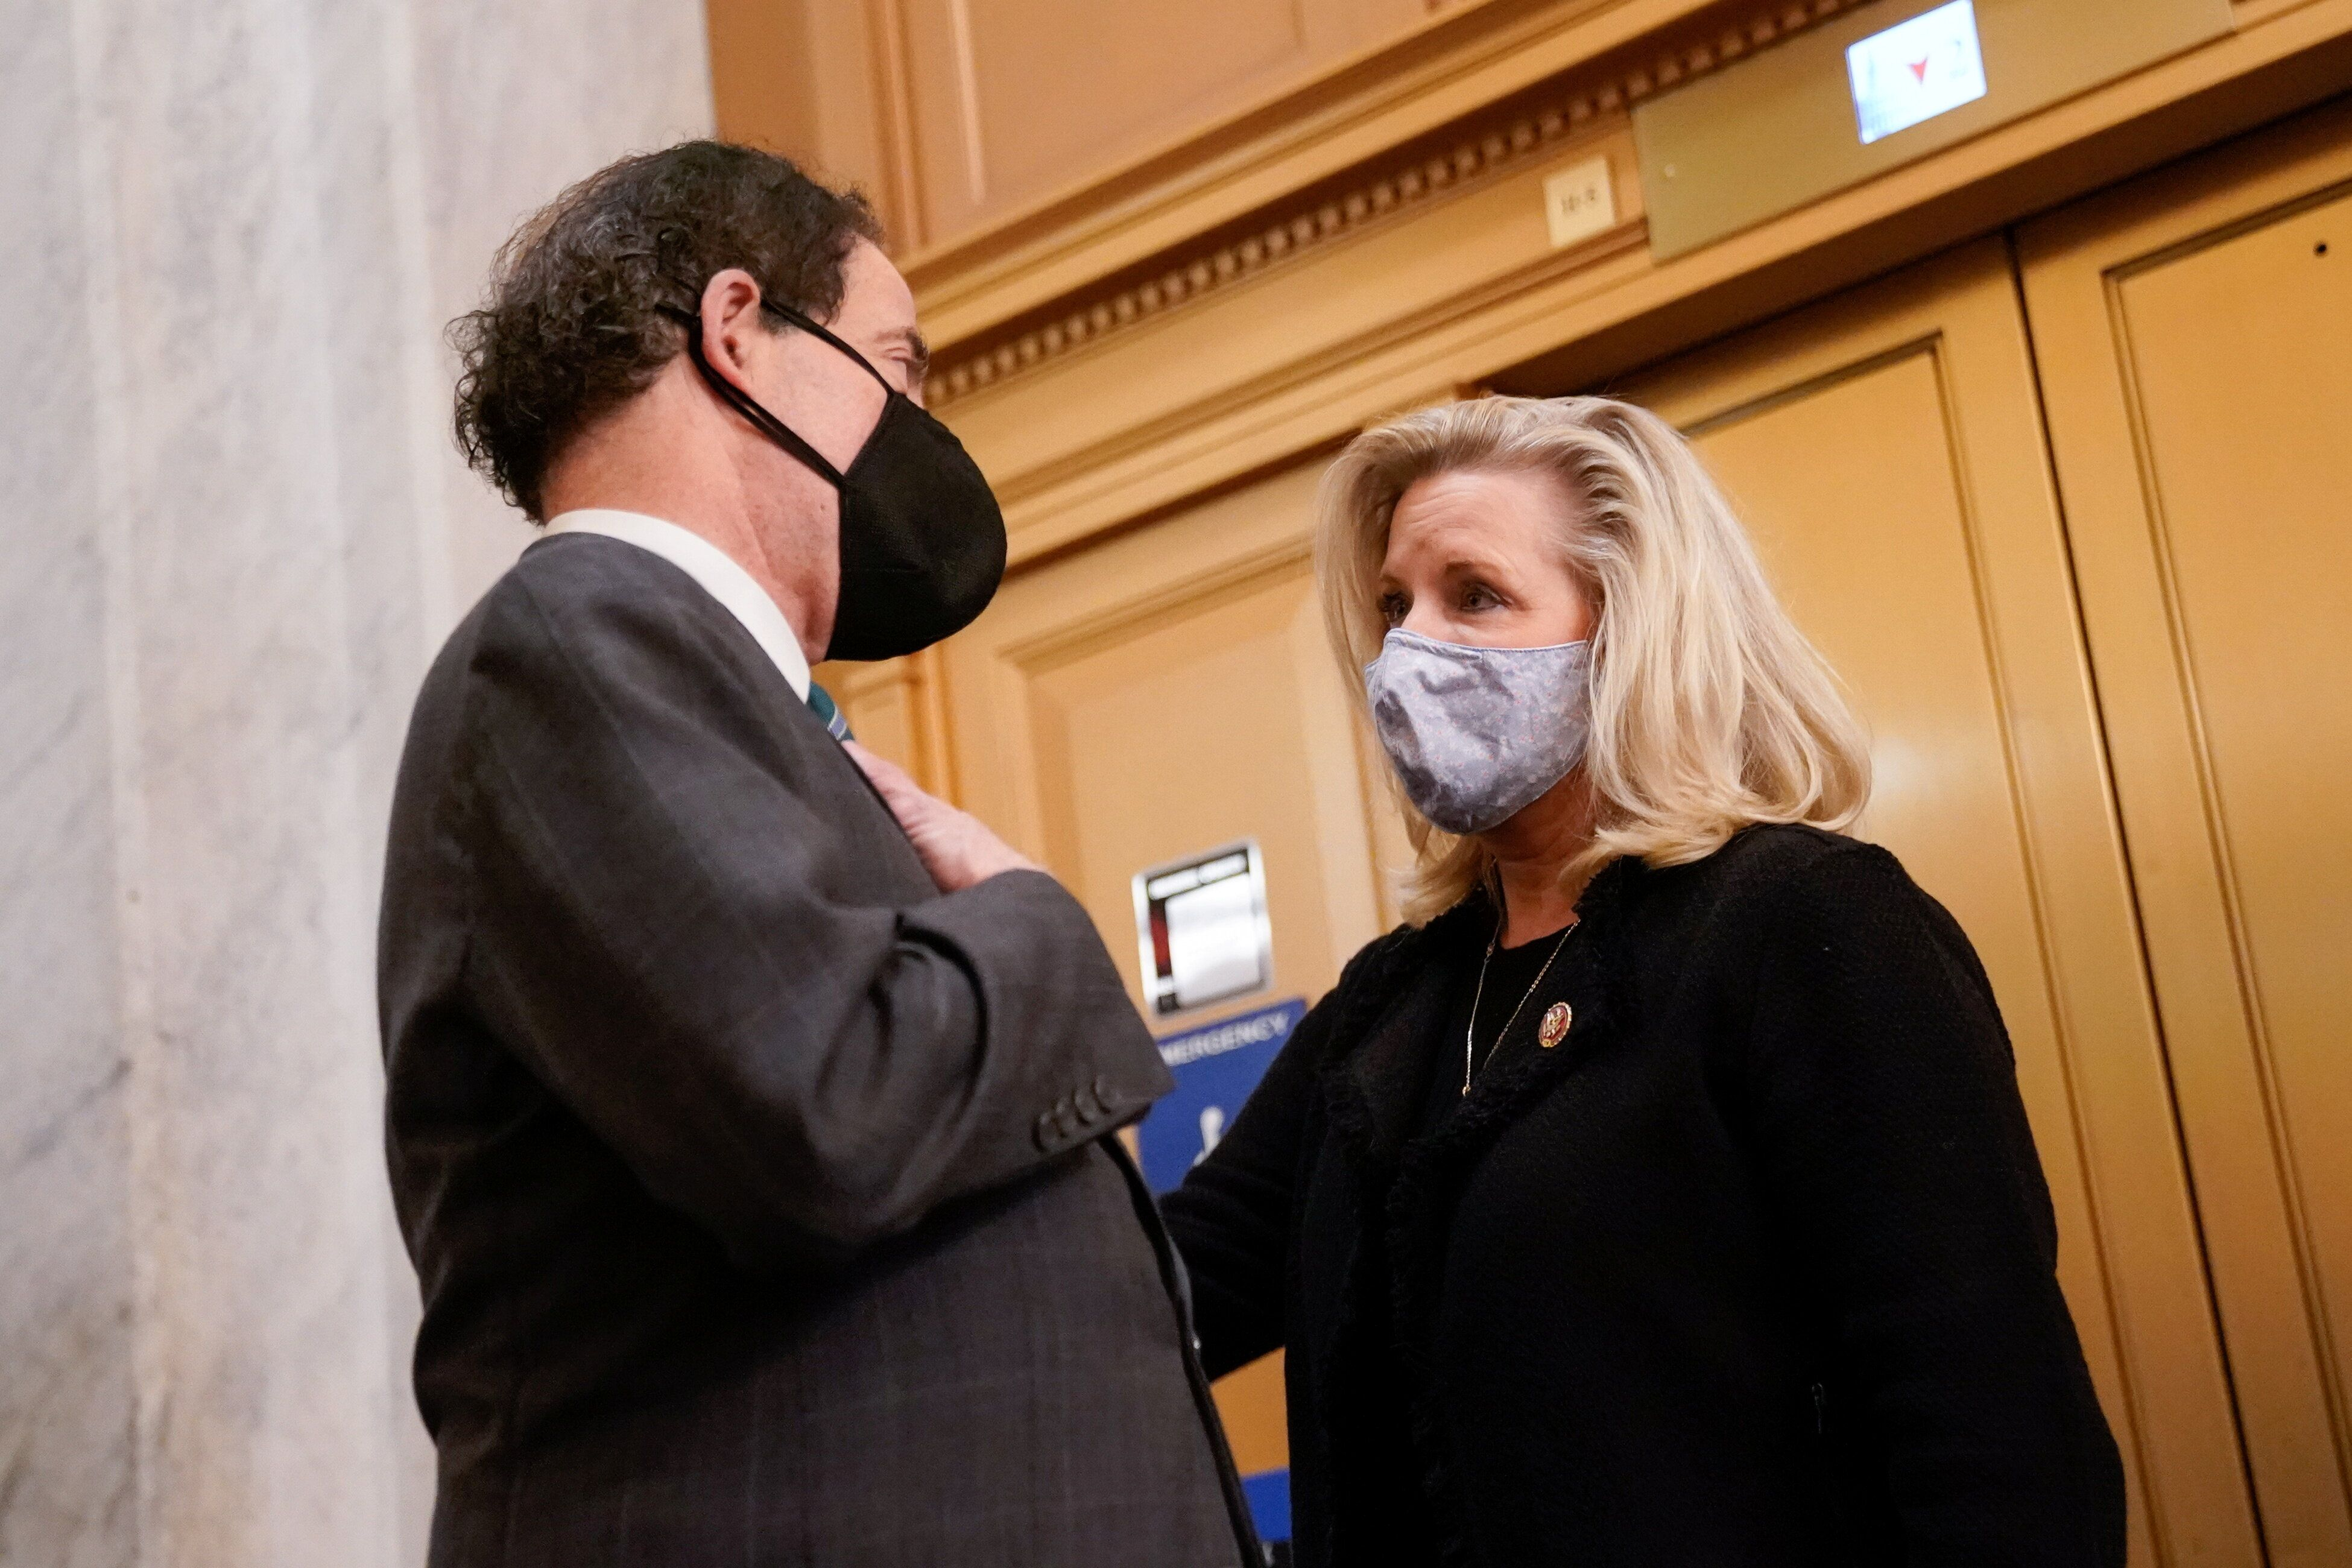 Rep. Jamie Raskin (D-MD) talks with Rep. Liz Cheney (R-WY) in the U.S. Capitol after the House voted on a resolution demandin